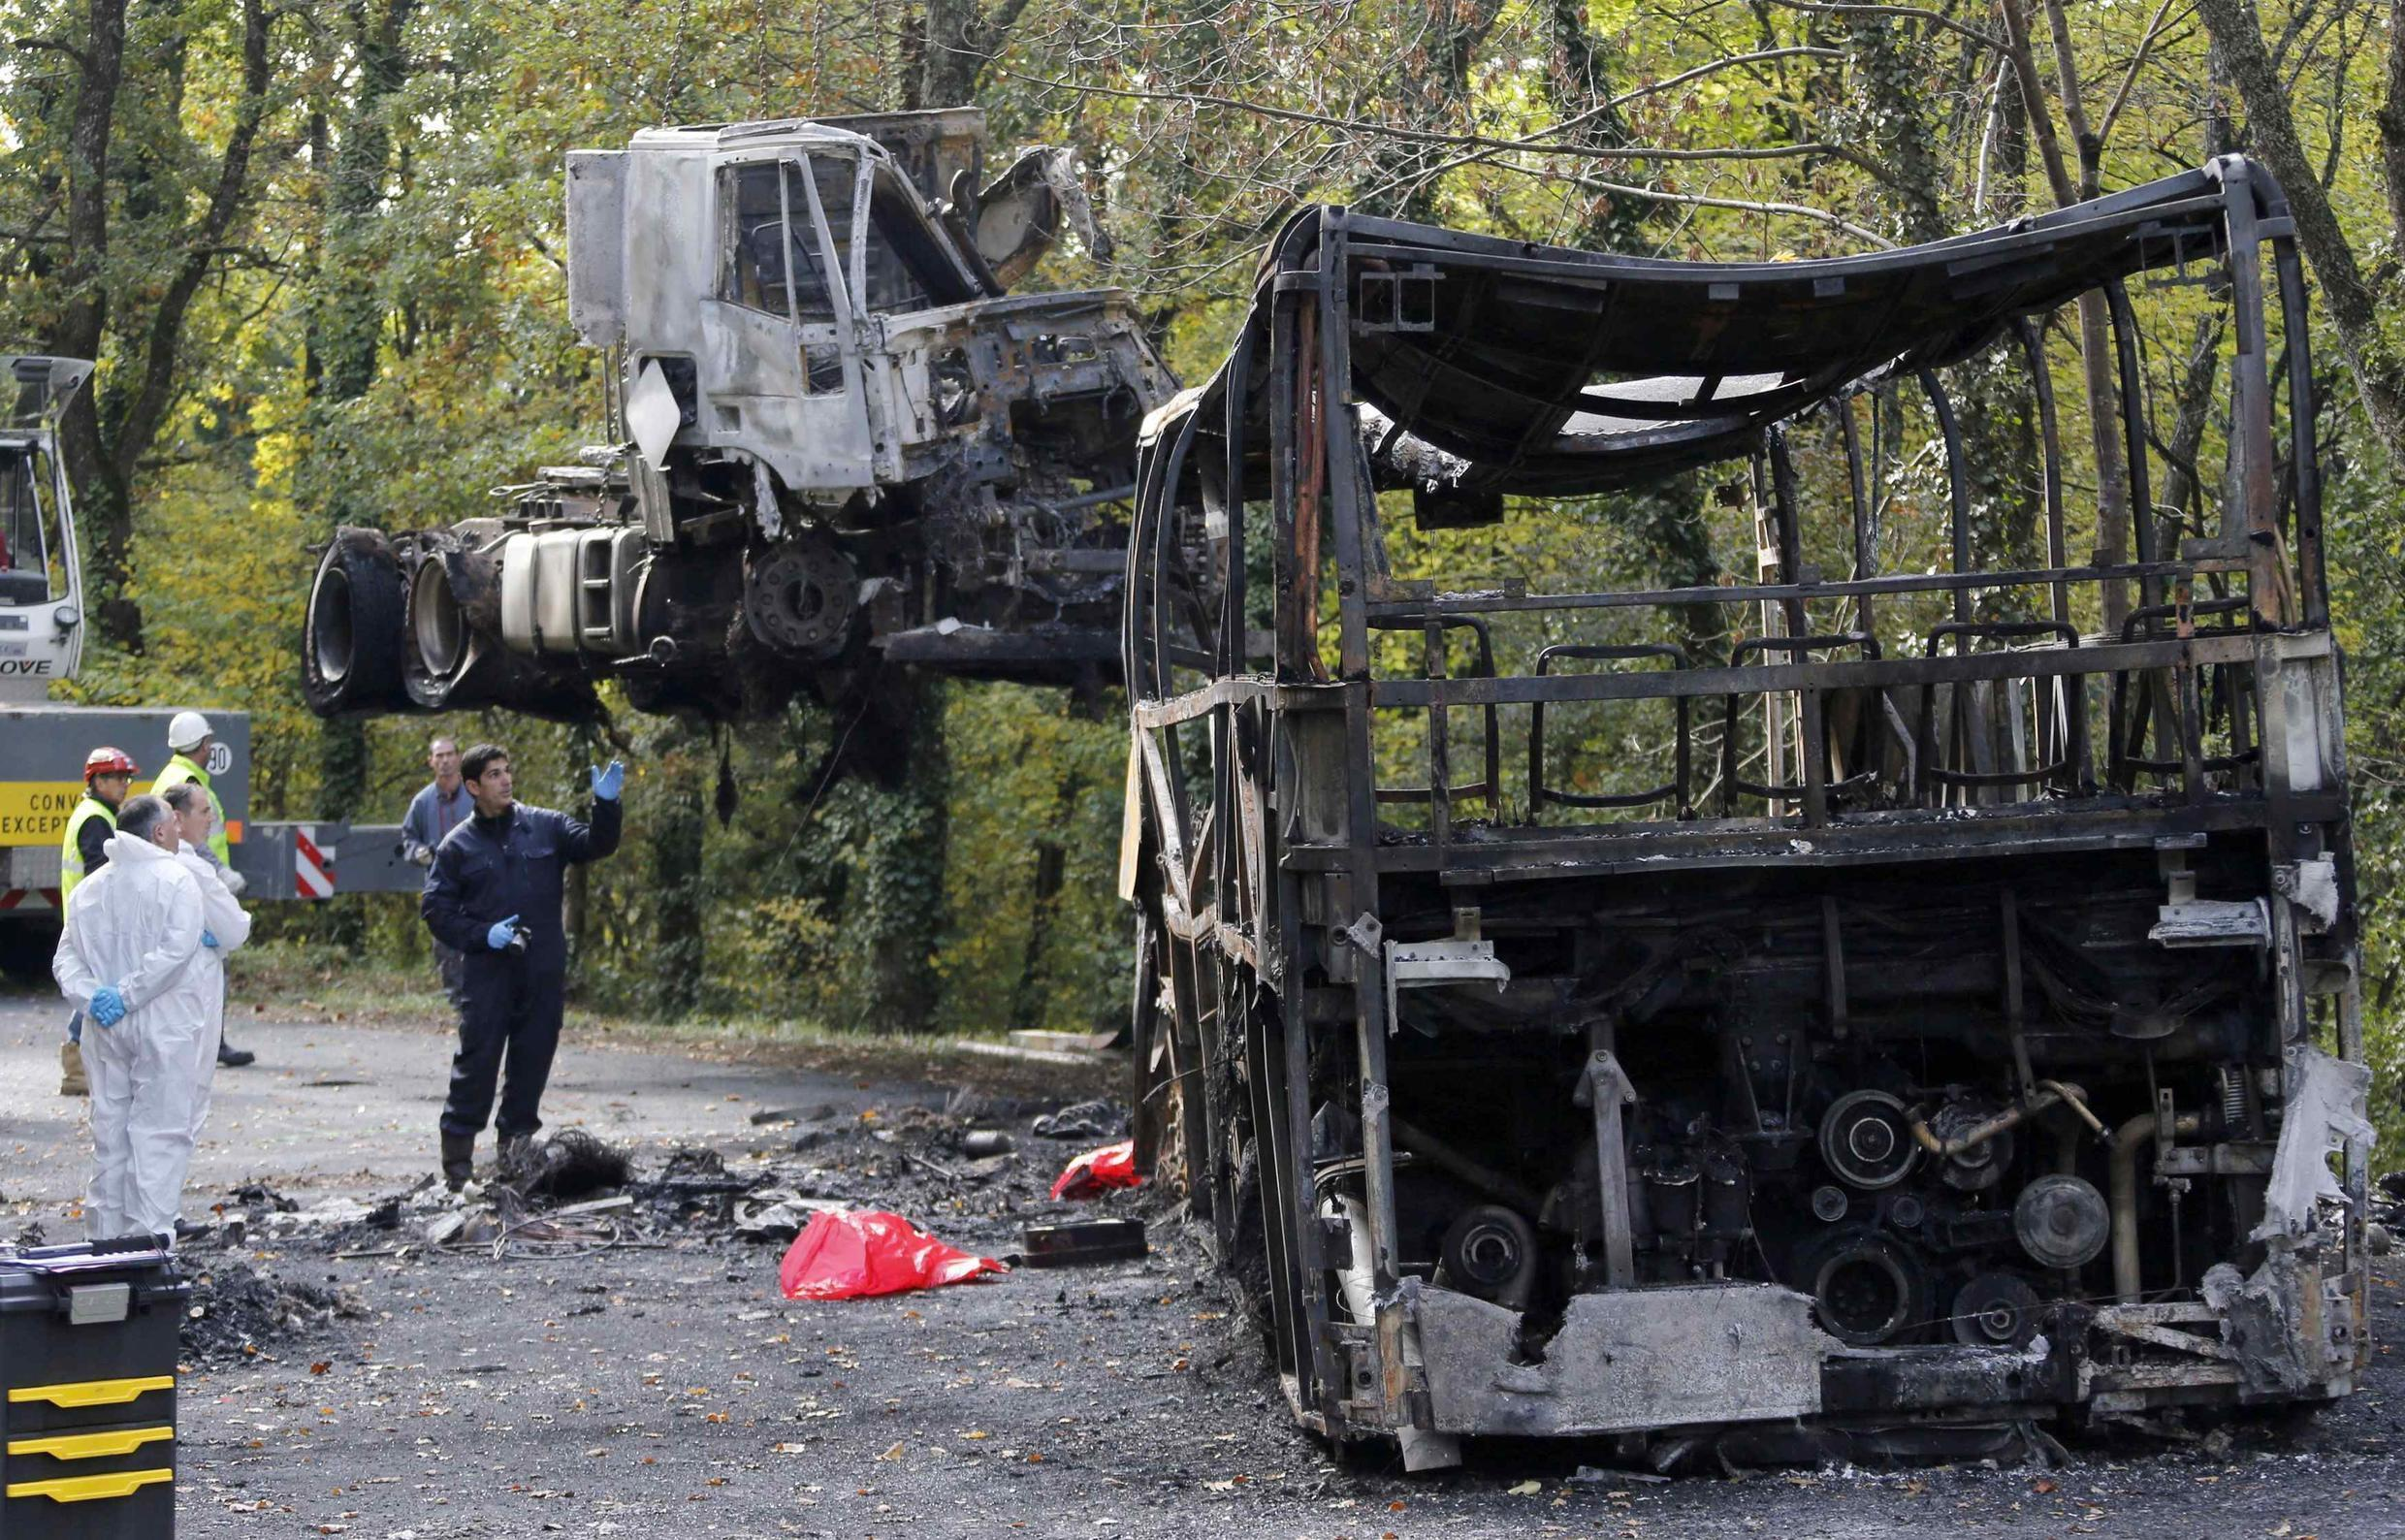 French gendarme investigators supervise the removal of the truck at the scene of the accident with a coach on a road near Puisseguin.